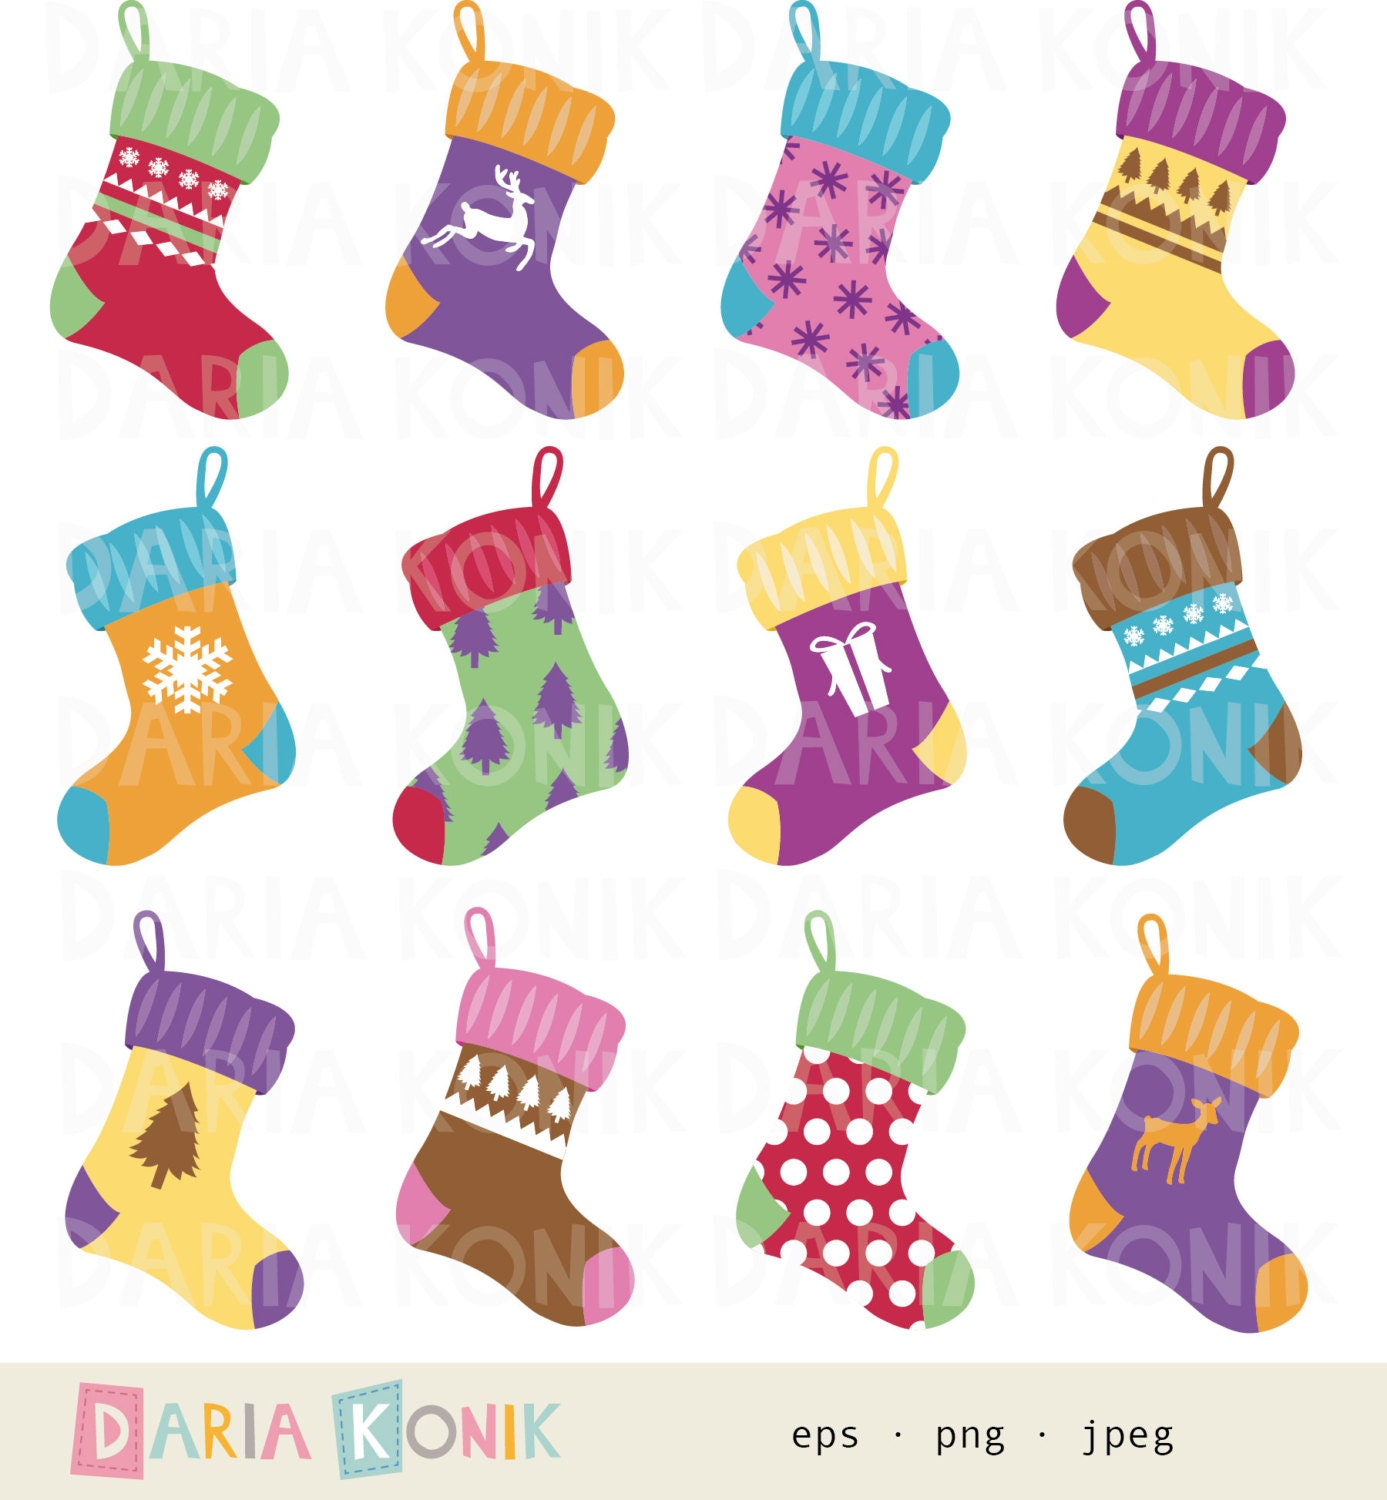 Christmas Stockings Clipart Free Il Fullxfull Lnx